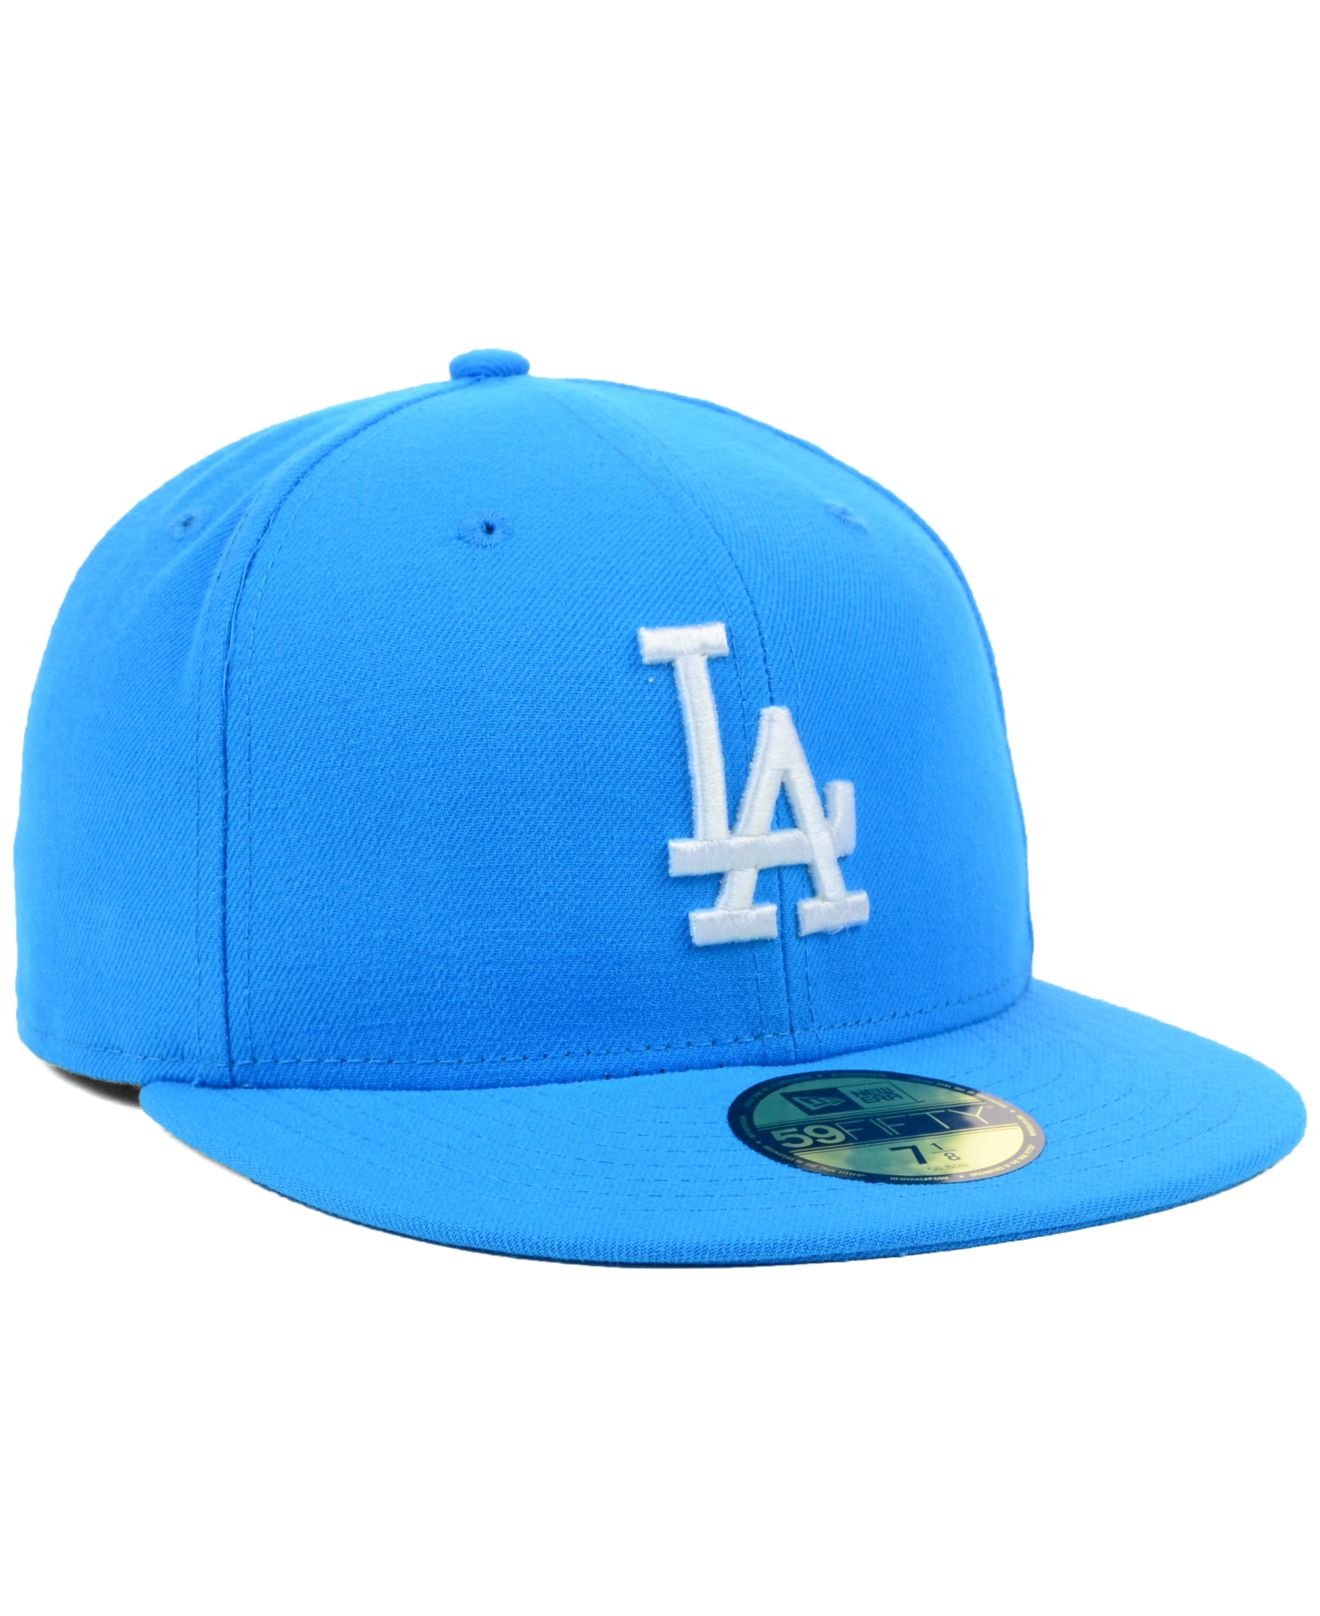 dd3bddb070276 Lyst - KTZ Los Angeles Dodgers Mlb C-dub 59fifty Cap in Blue for Men